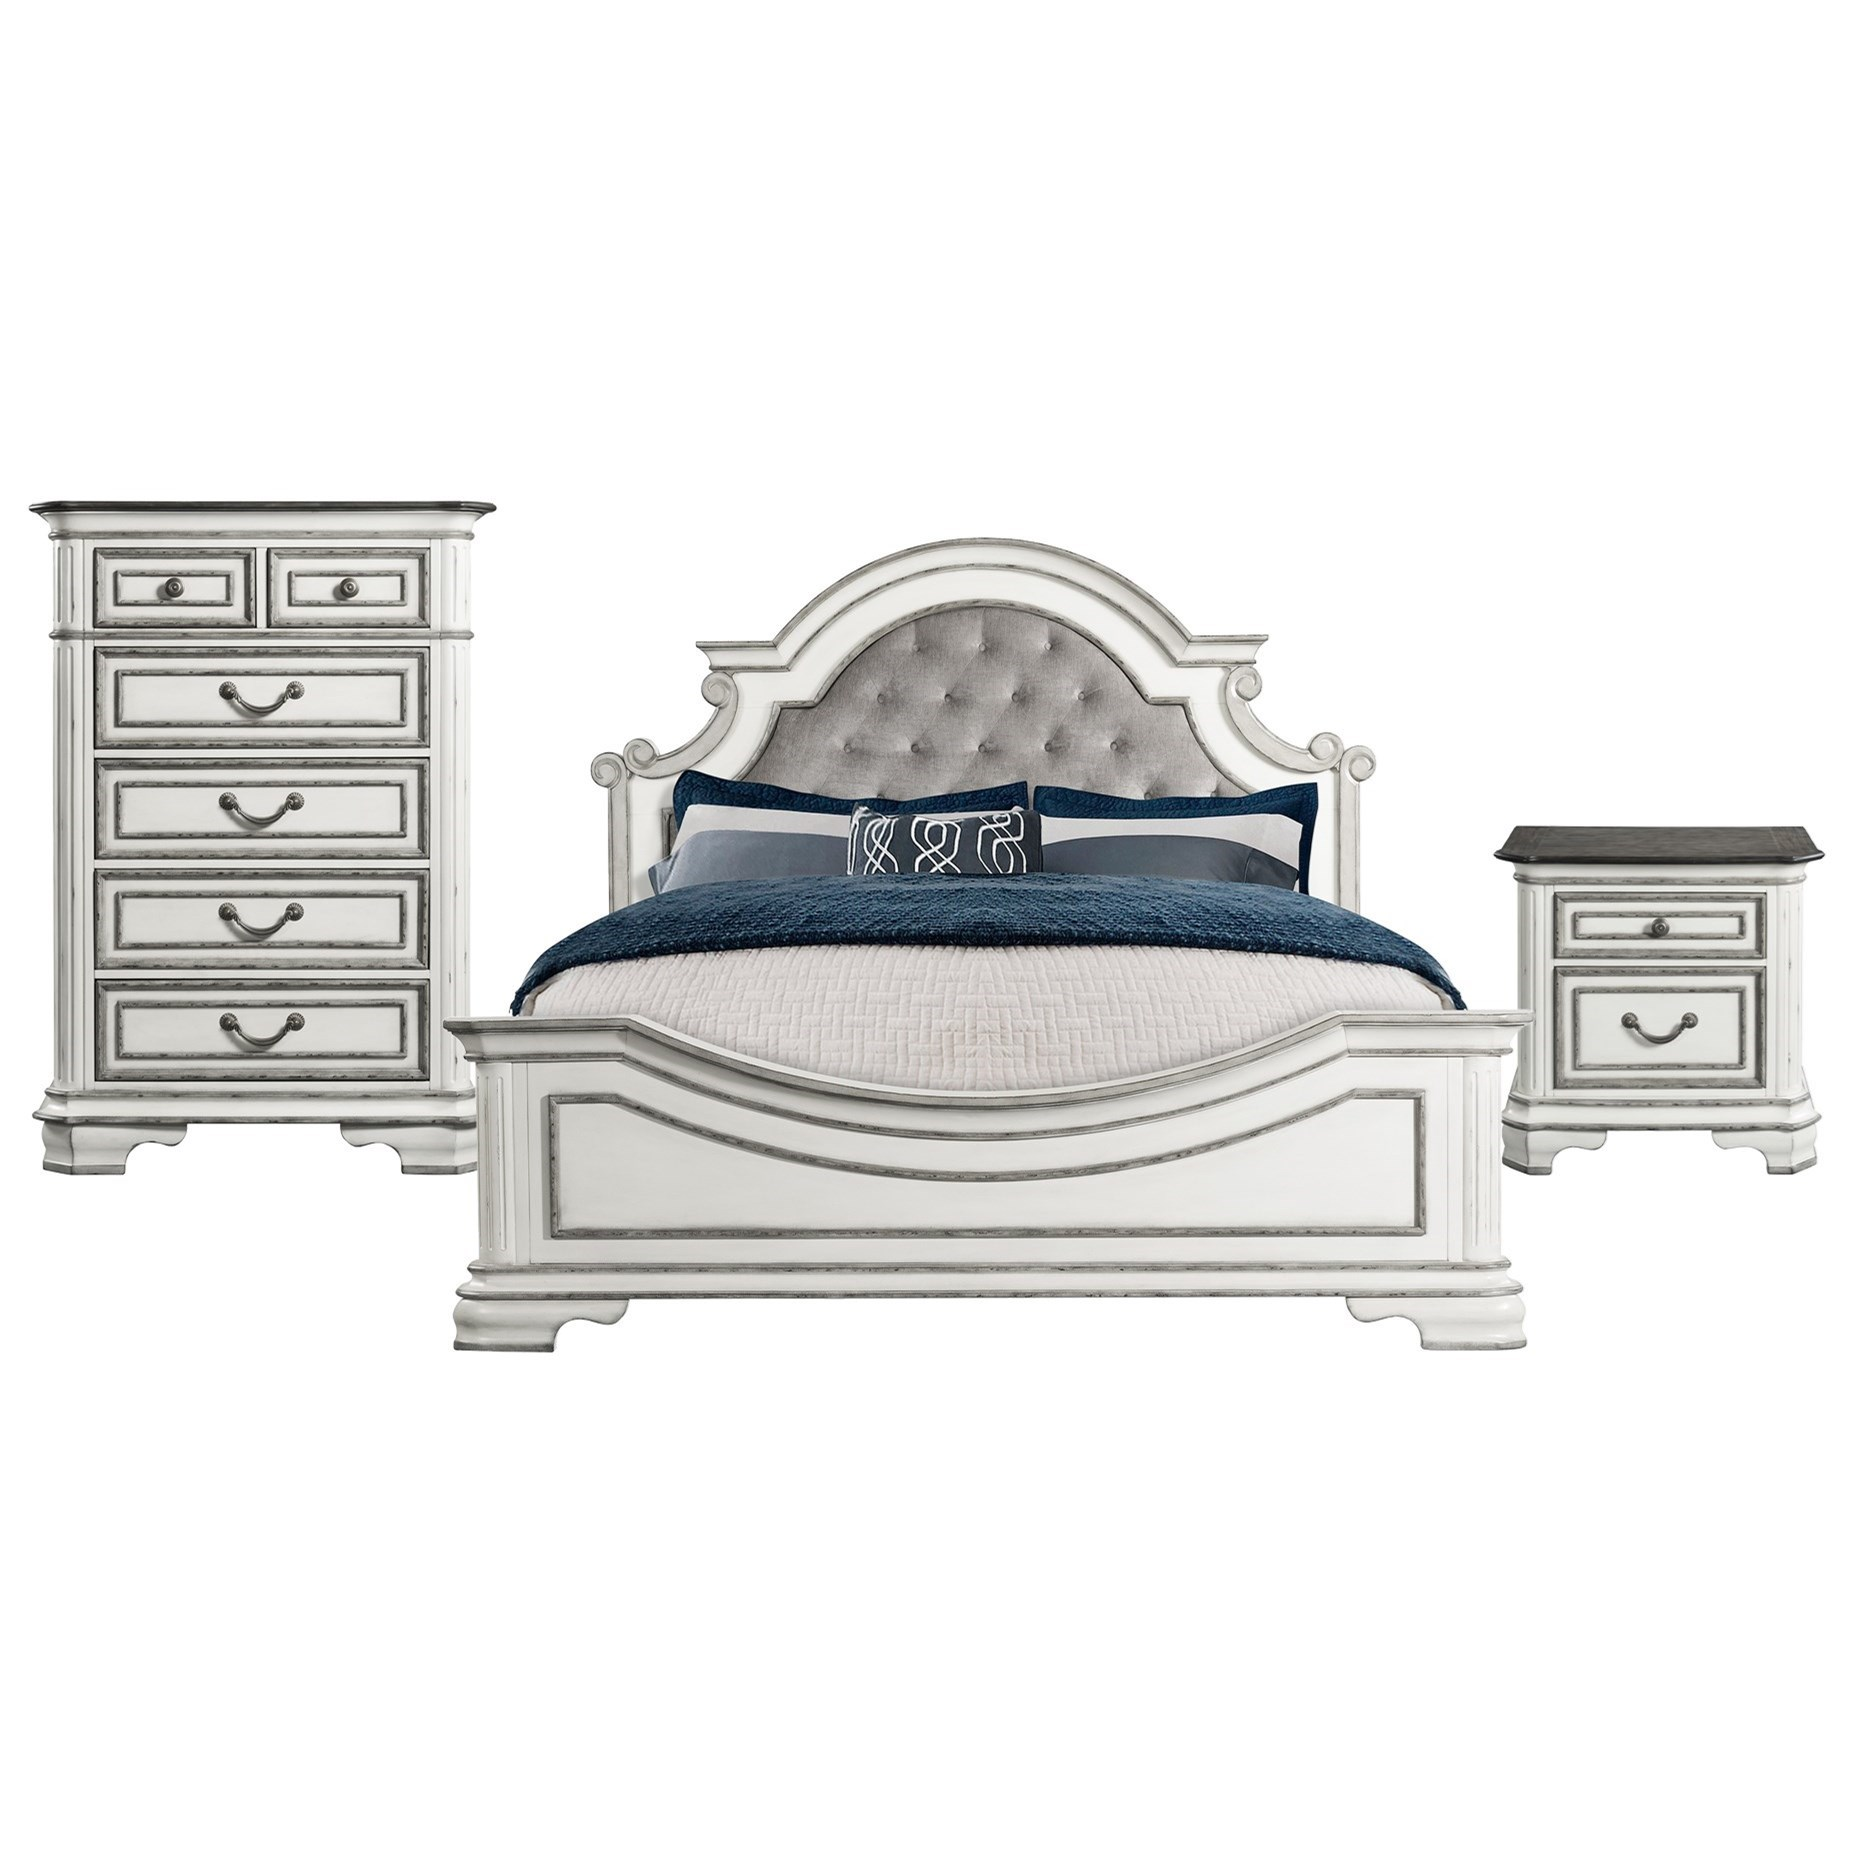 Leighton Manor King Bedroom Group by Elements International at Lindy's Furniture Company